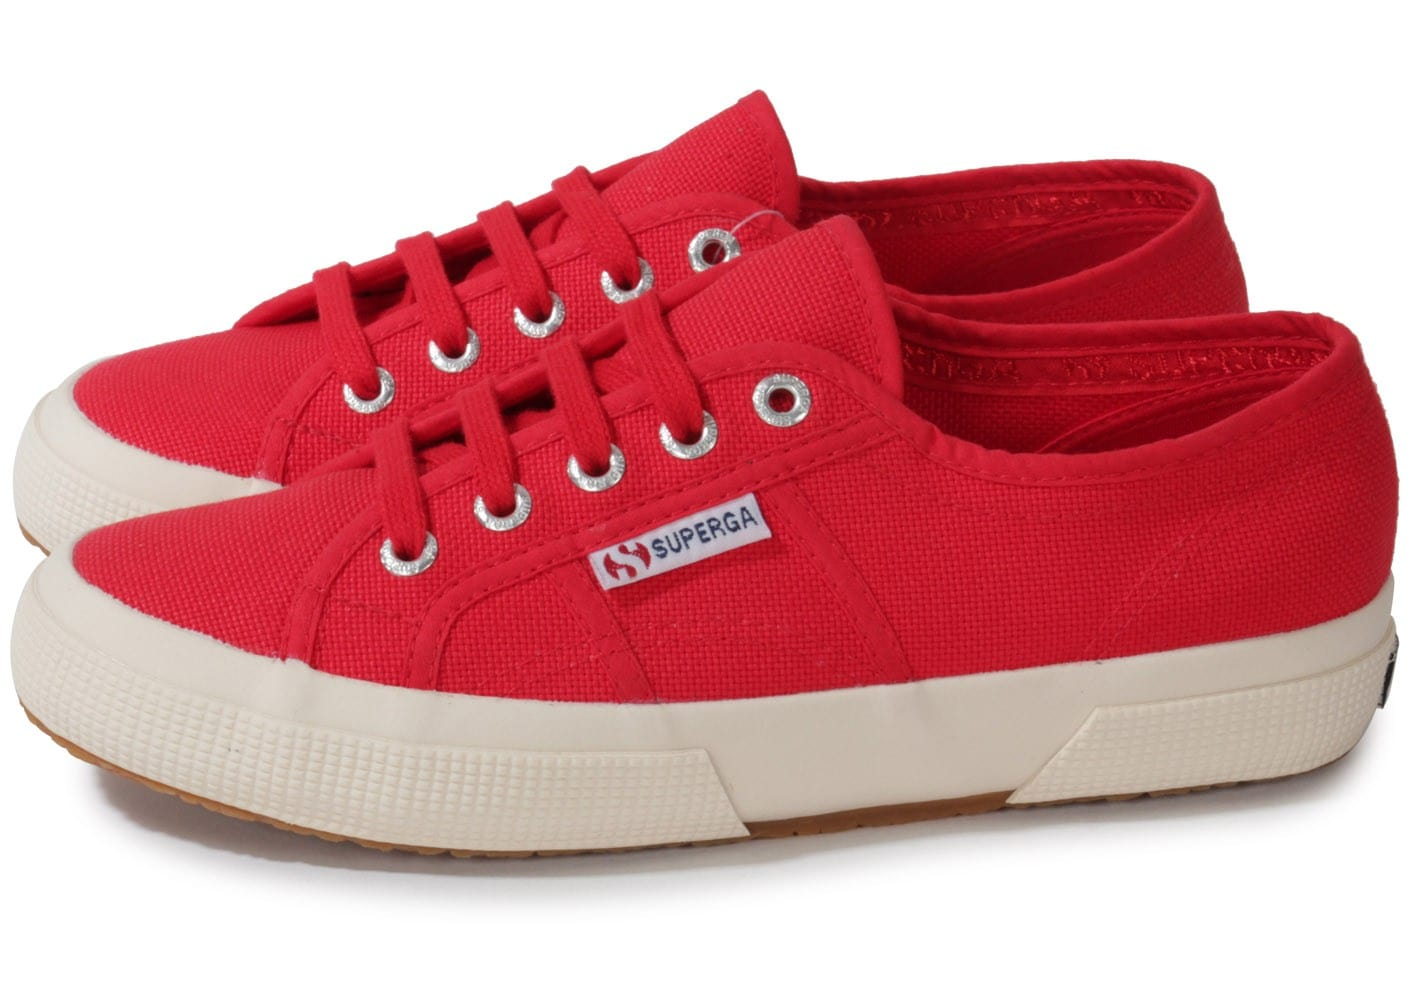 2750 Superga Classic Rouge Chaussures Chausport Coti 6Yvybf7g